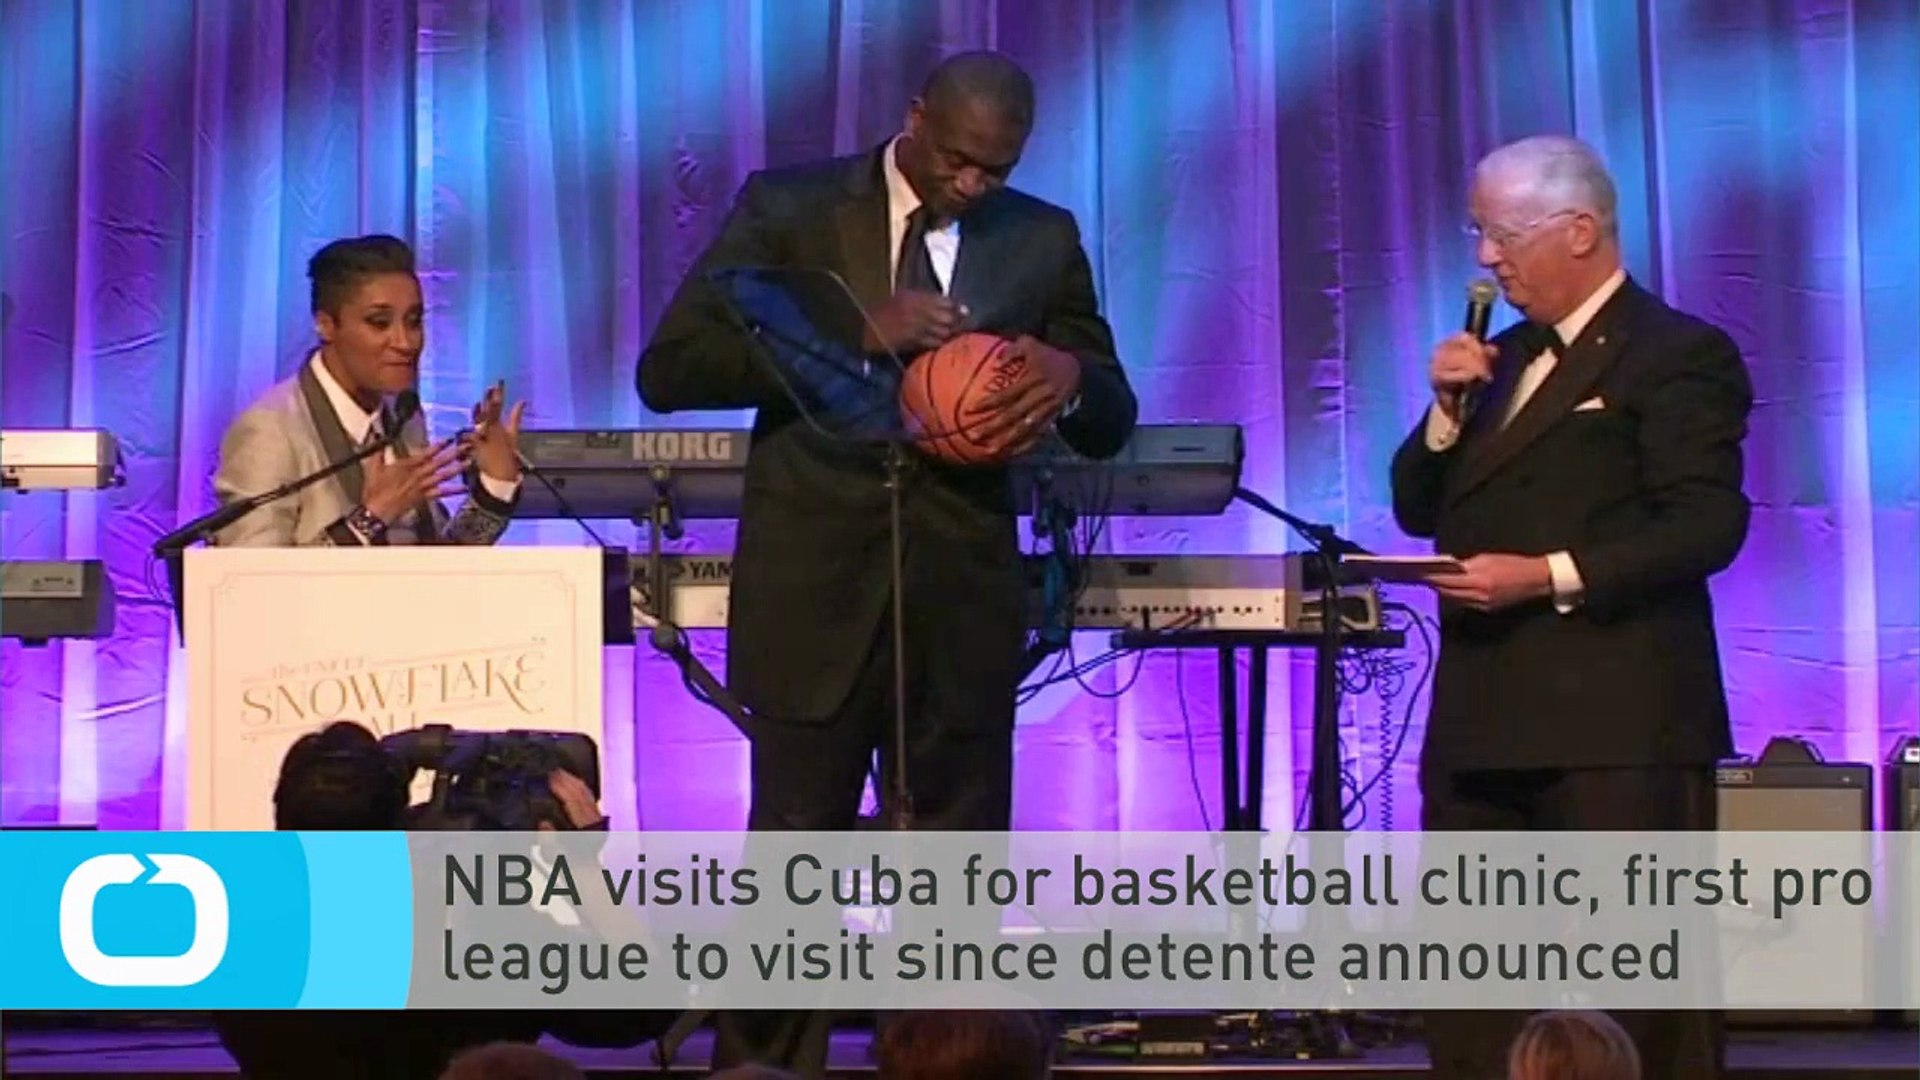 NBA Visits Cuba for Basketball Clinic, First Pro League to Visit Since Detente Announced